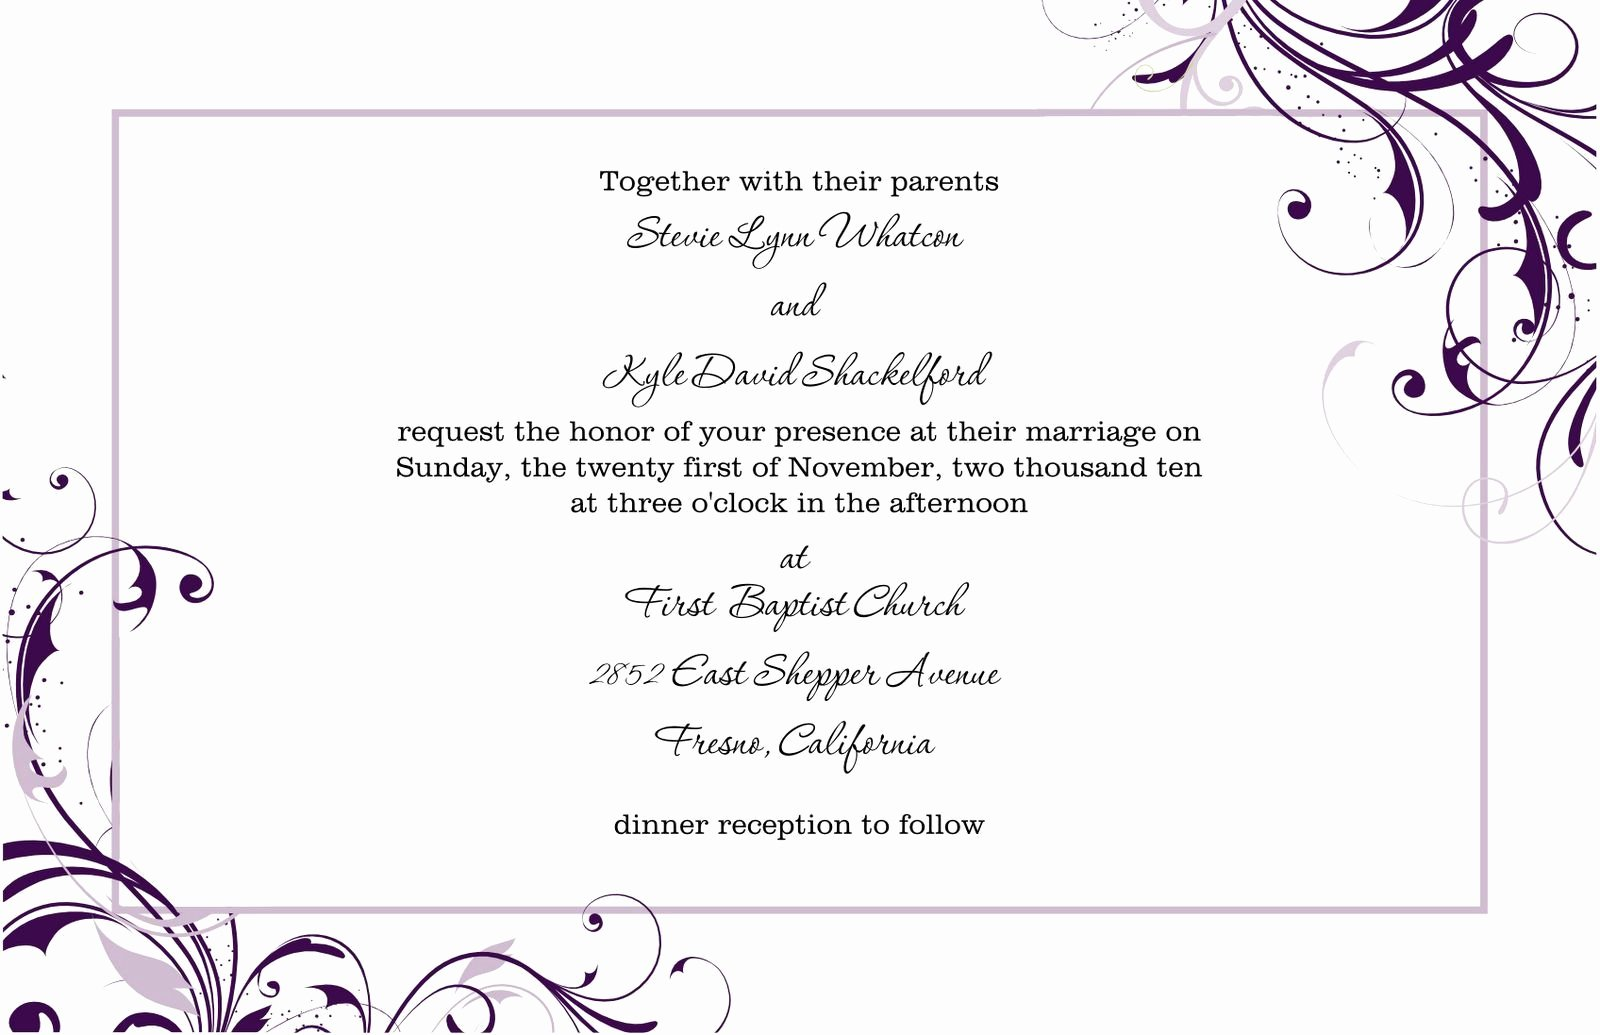 Wedding Invitation Template Word Beautiful Free Blank Wedding Invitation Templates for Microsoft Word